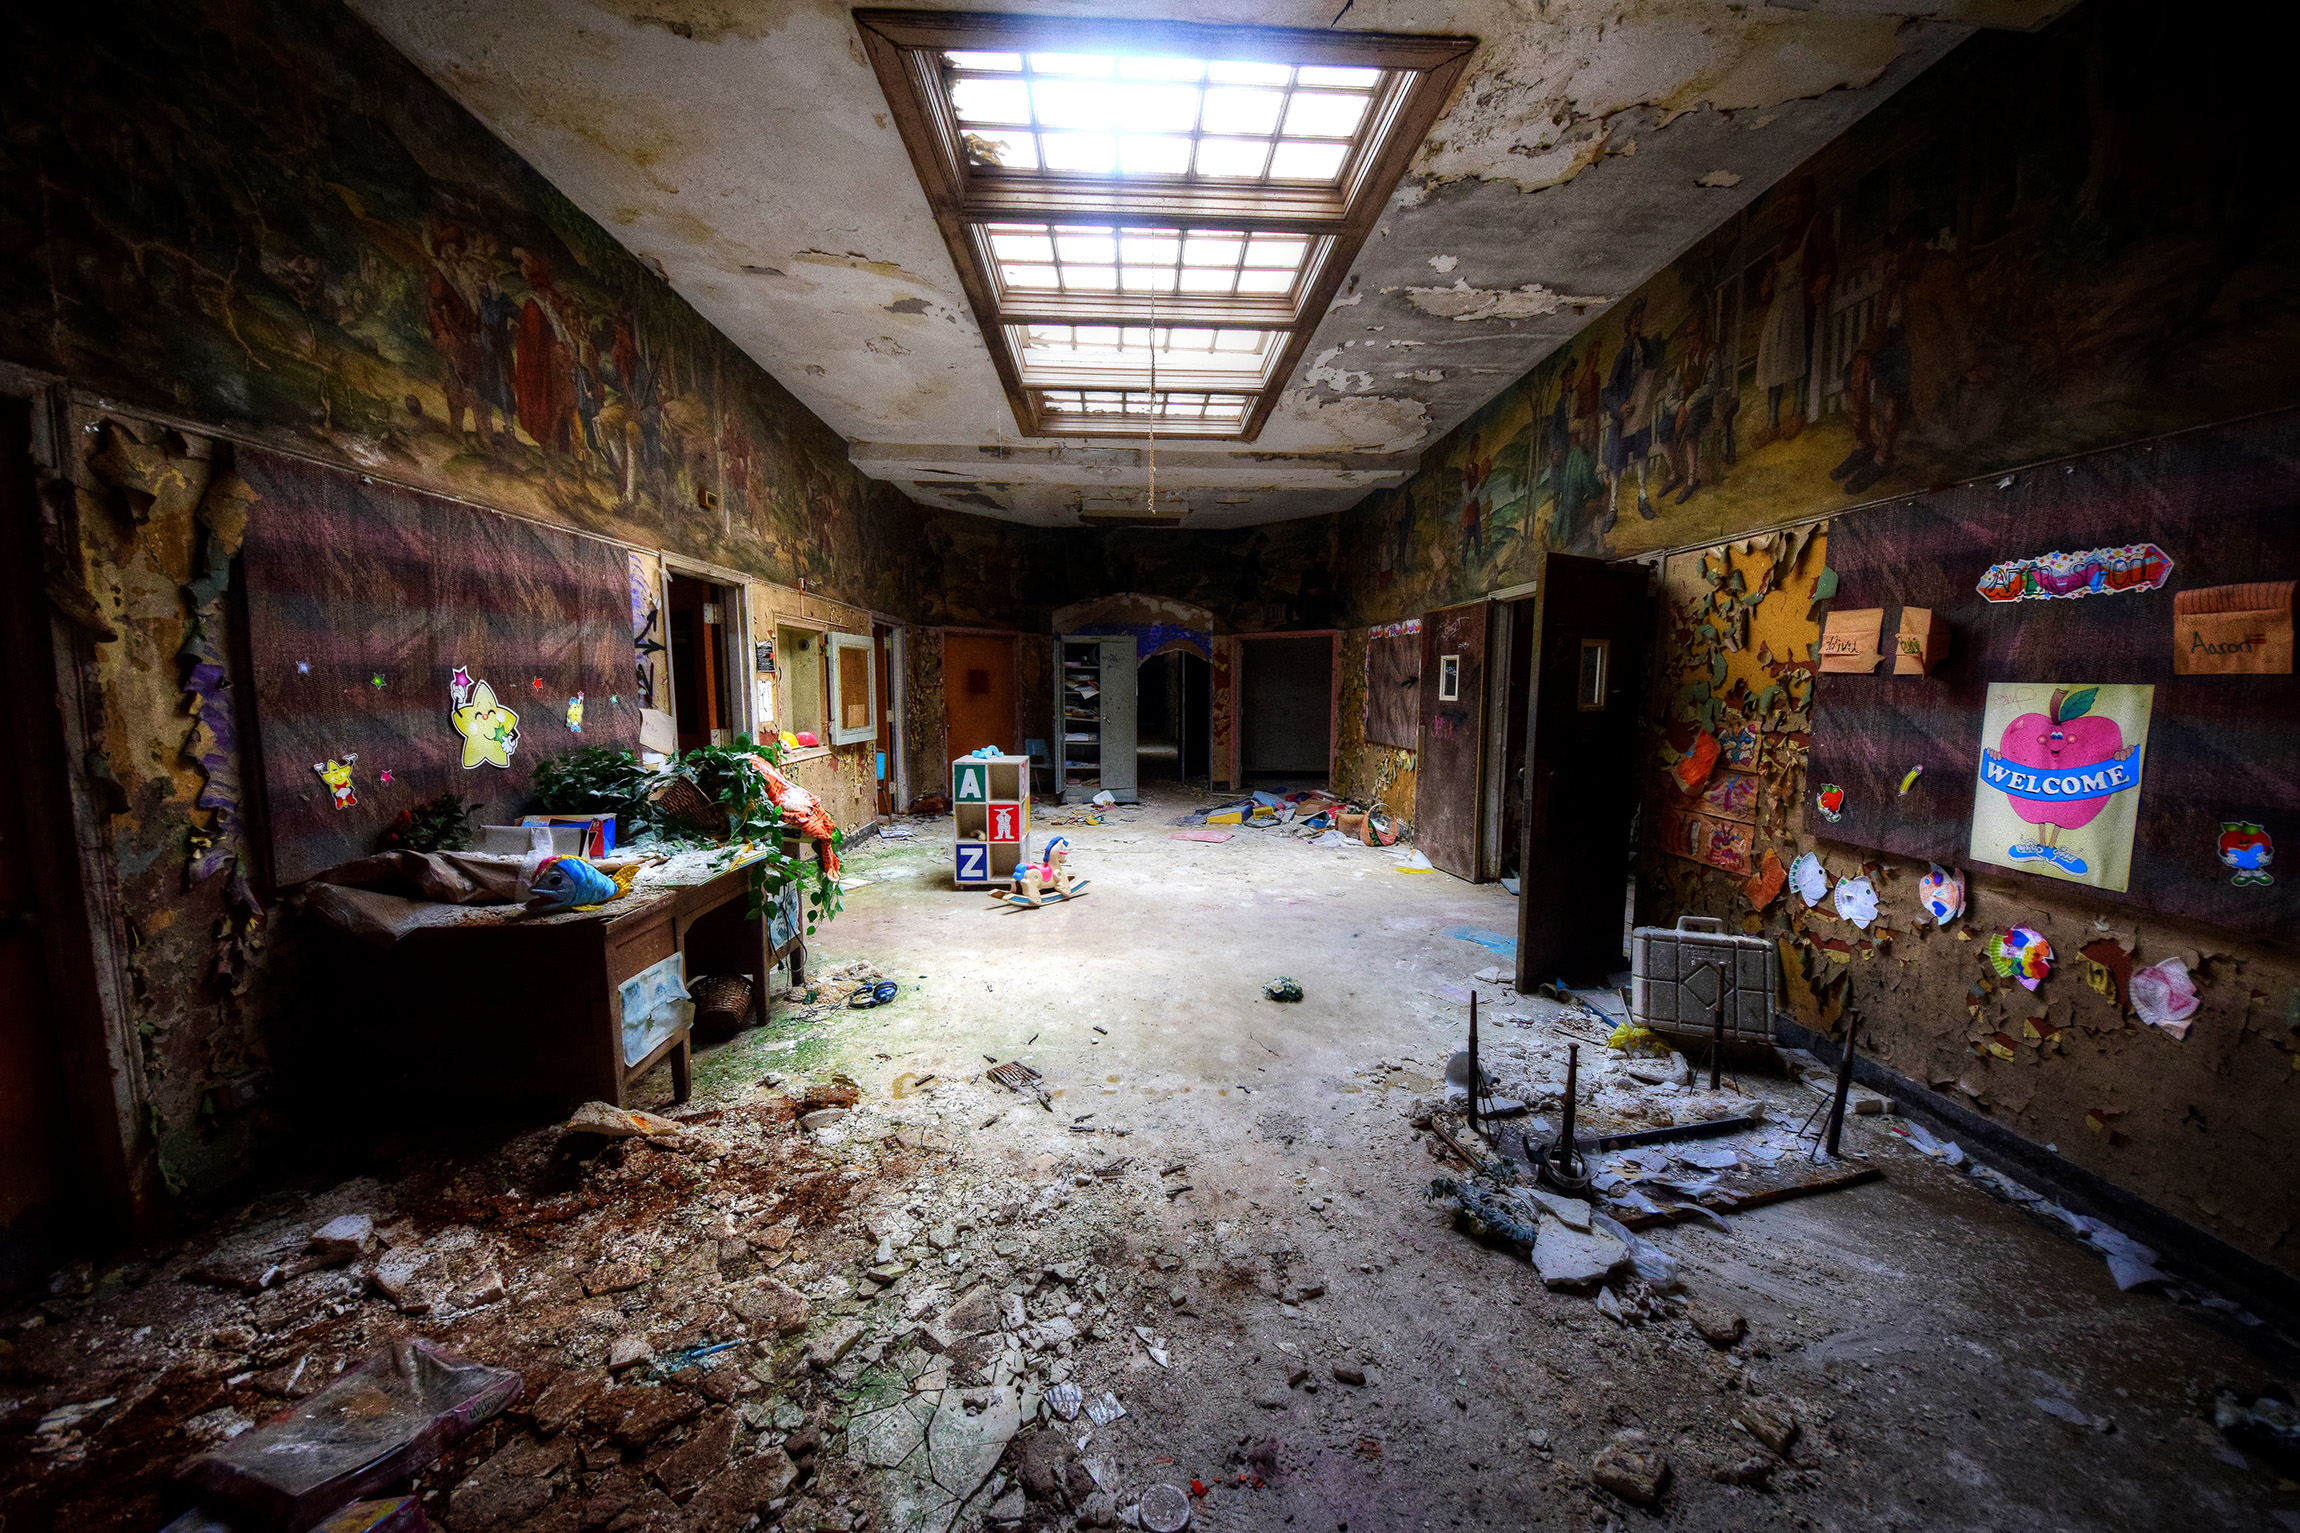 Rocklands Psychiatric Centre-Childrens Block - This is the kids block of this gargantuan site.It got to the stage where I couldn't face any more rooms rammed full of surreal toys (note the weird pumpkin stack toy – that was freaky) and sinister decay. It went on for ages and simply had room after room of treats. As the sun was starting to set we went down into the basement via stairway right next to the entry point. There was a huge room full of antique rotting chairs and an old fashion sign marking 'main tunnel' we shone our torch down the way and couldn't see the end. It would take a week to even give a cursory superficial sweep of this place. It just confirmed to me that the USA is an exploring heaven.I don't think I will ever need to see an abandoned nursery/school/kids psychi unit ever again as this completely over did that whole thing-complete saturation. I don't think you will either, after scrolling through my pictures!